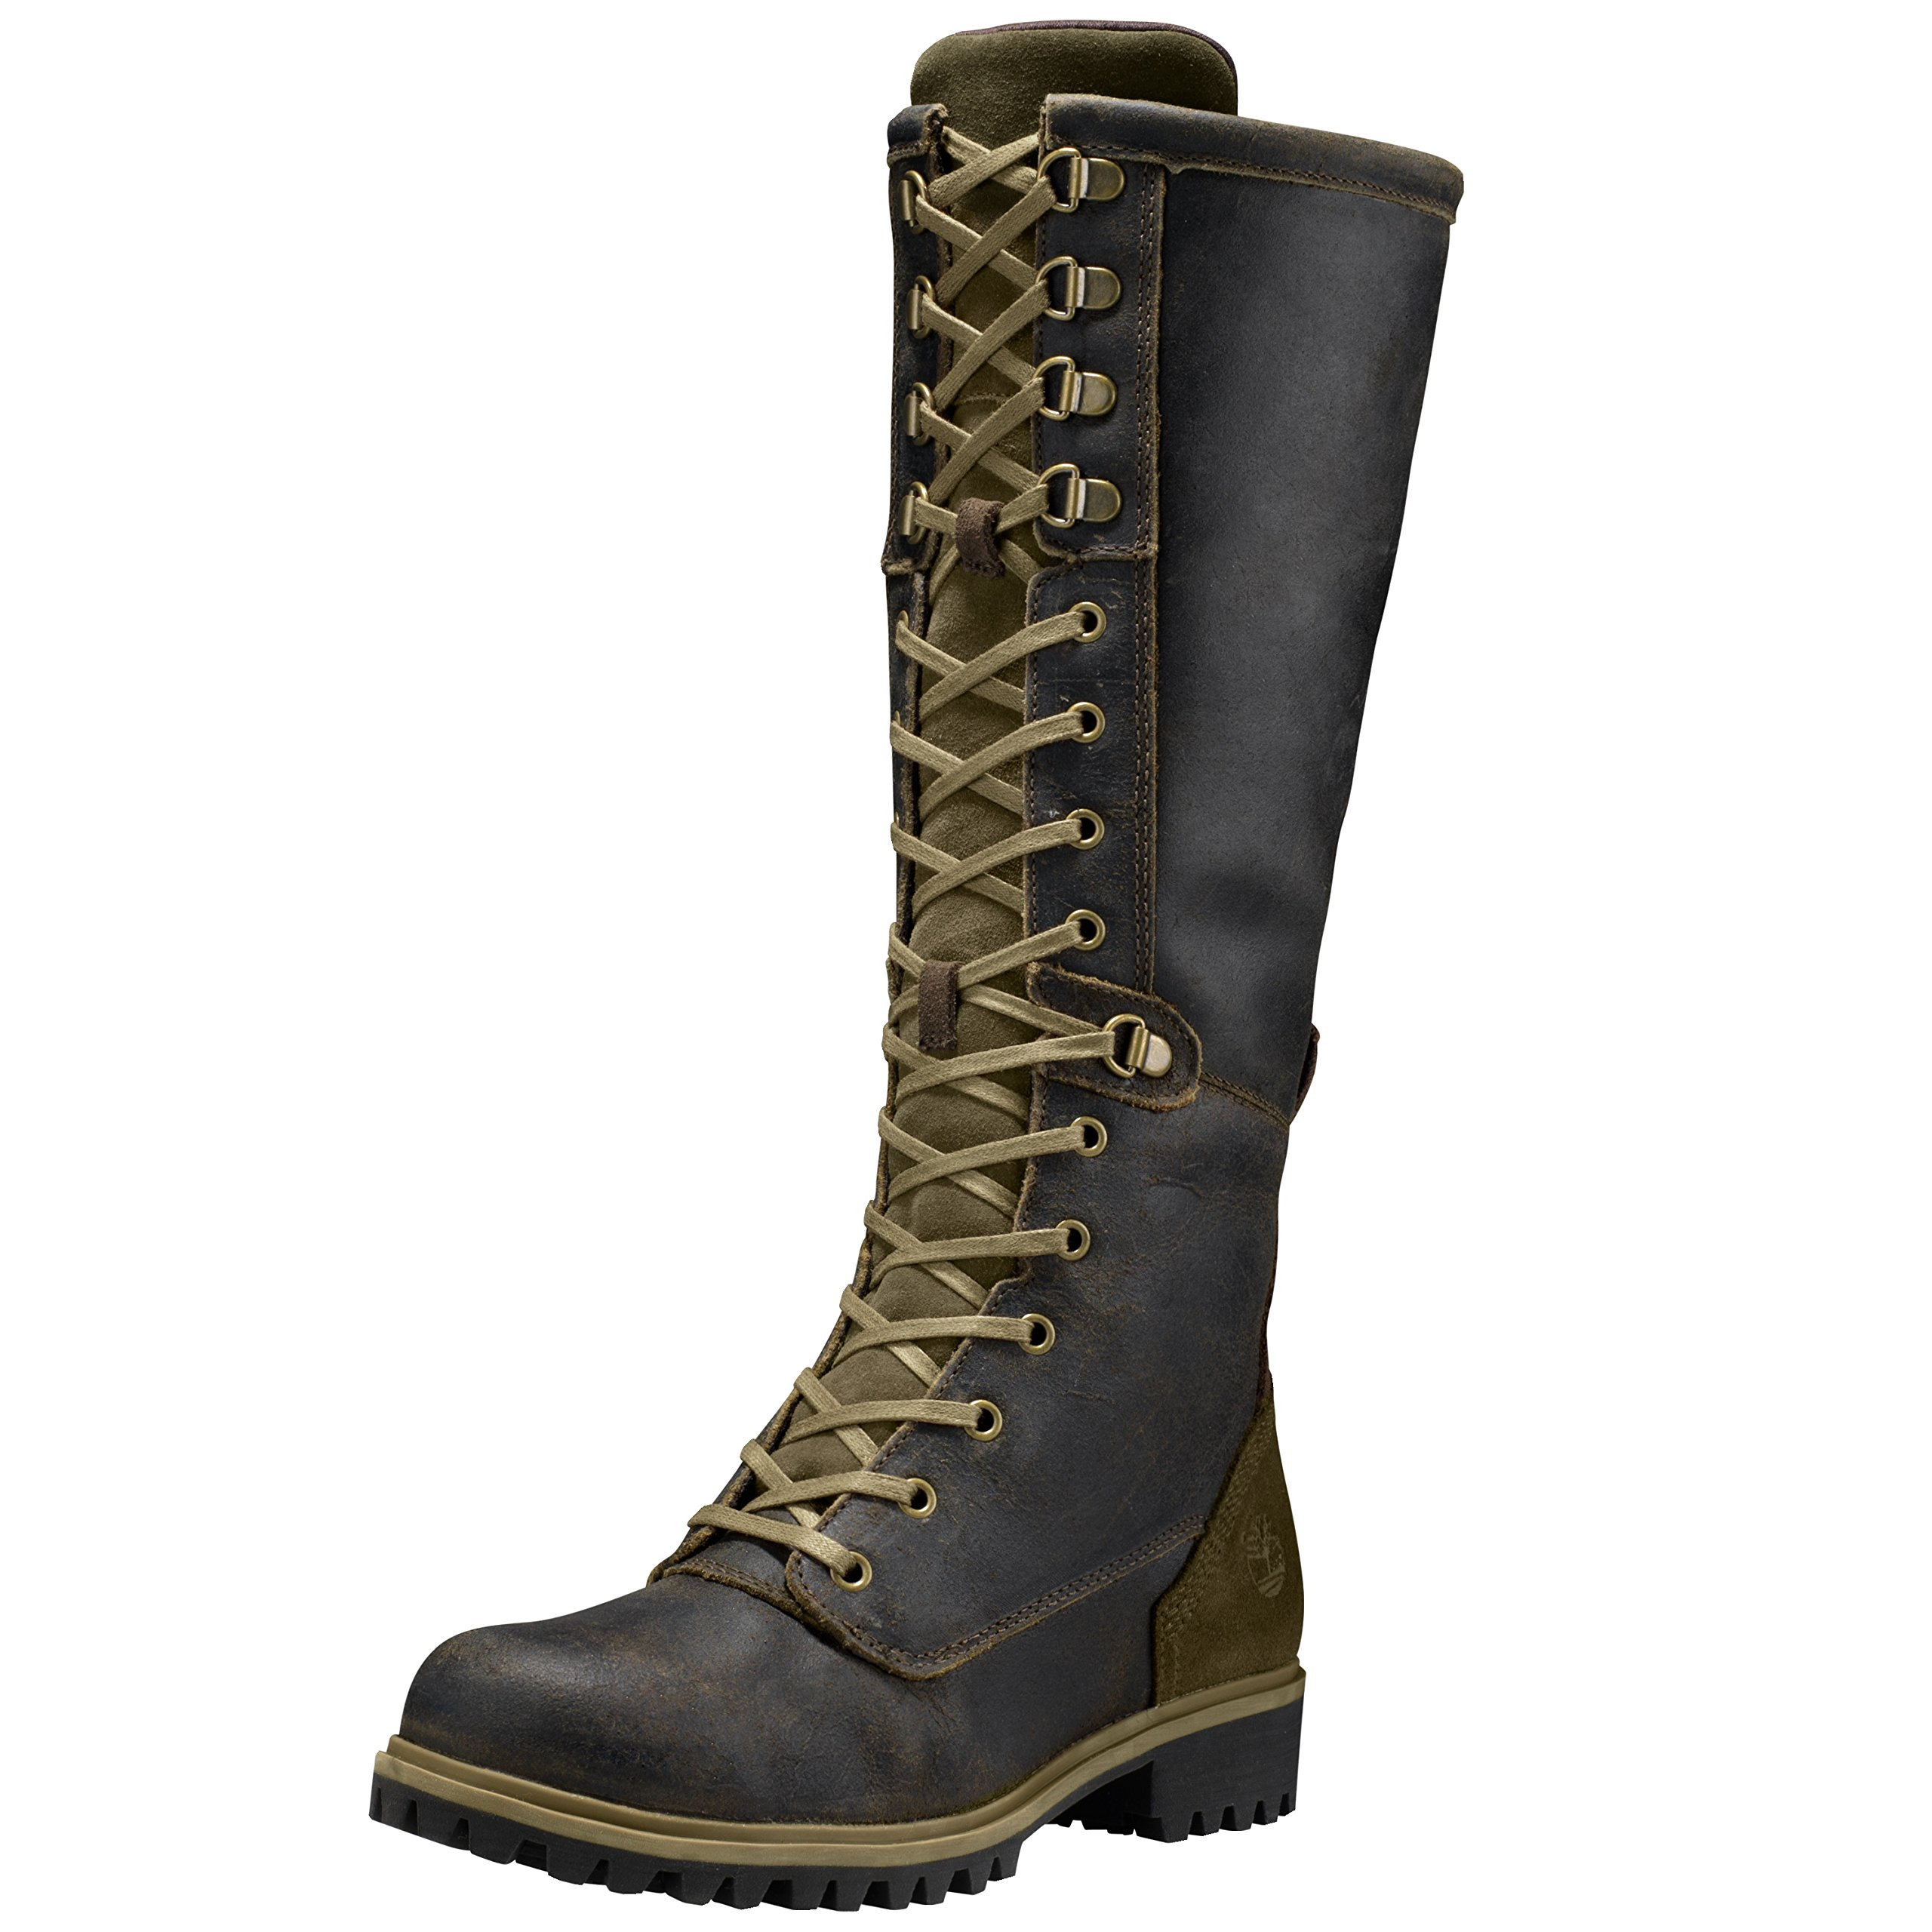 Timberland Women's Wheelwright Tall Lace Waterproof Boot 7.5 US M Dark Brown Suede